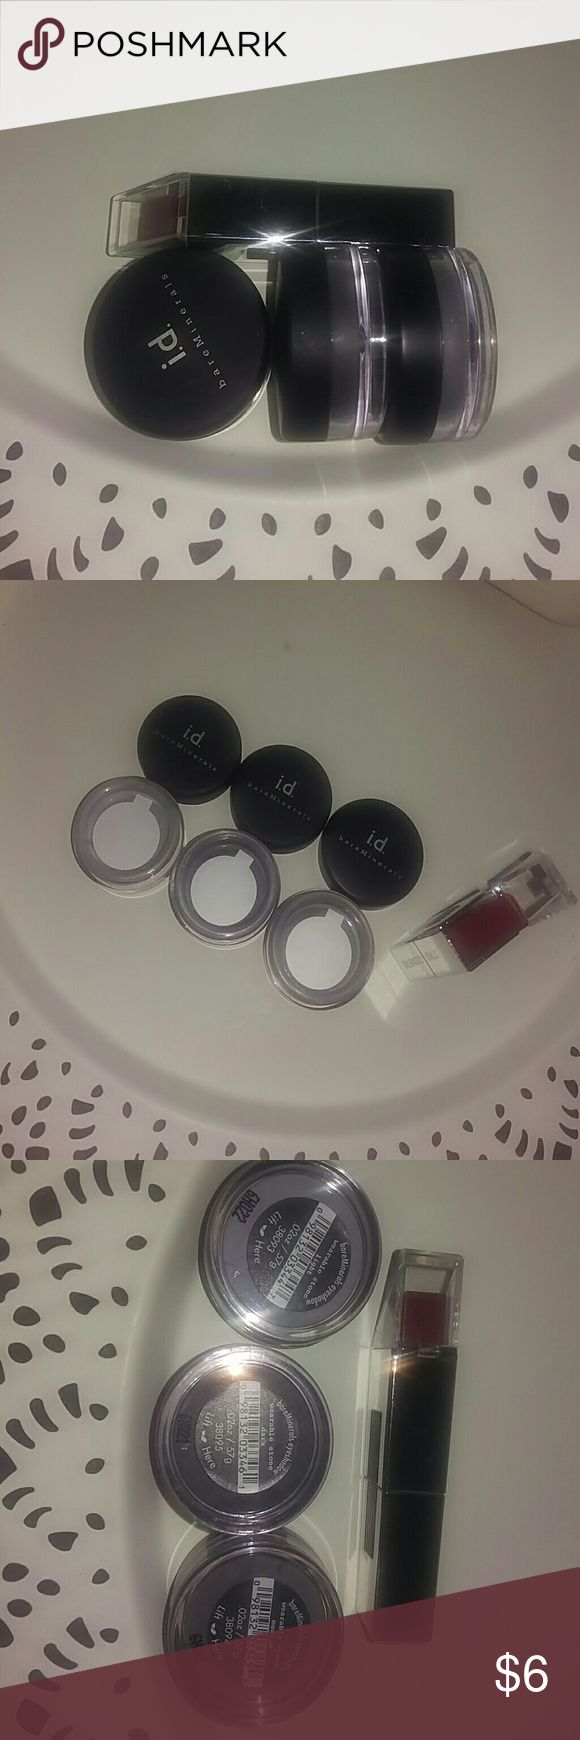 """ID bare minerals 3 shadow set with lipstick gift 3 new/sealed bare minerals eyeshadow singles in """"Wearable Stone"""" light, medium and dark, which is a silver/gray toned color.  Accompanied is a """"Rouge"""" colored, angle shaped lipstick by Stiks Cosmetiks. This was only tested with a small swatch on the hand. bareMinerals Makeup Eyeshadow"""